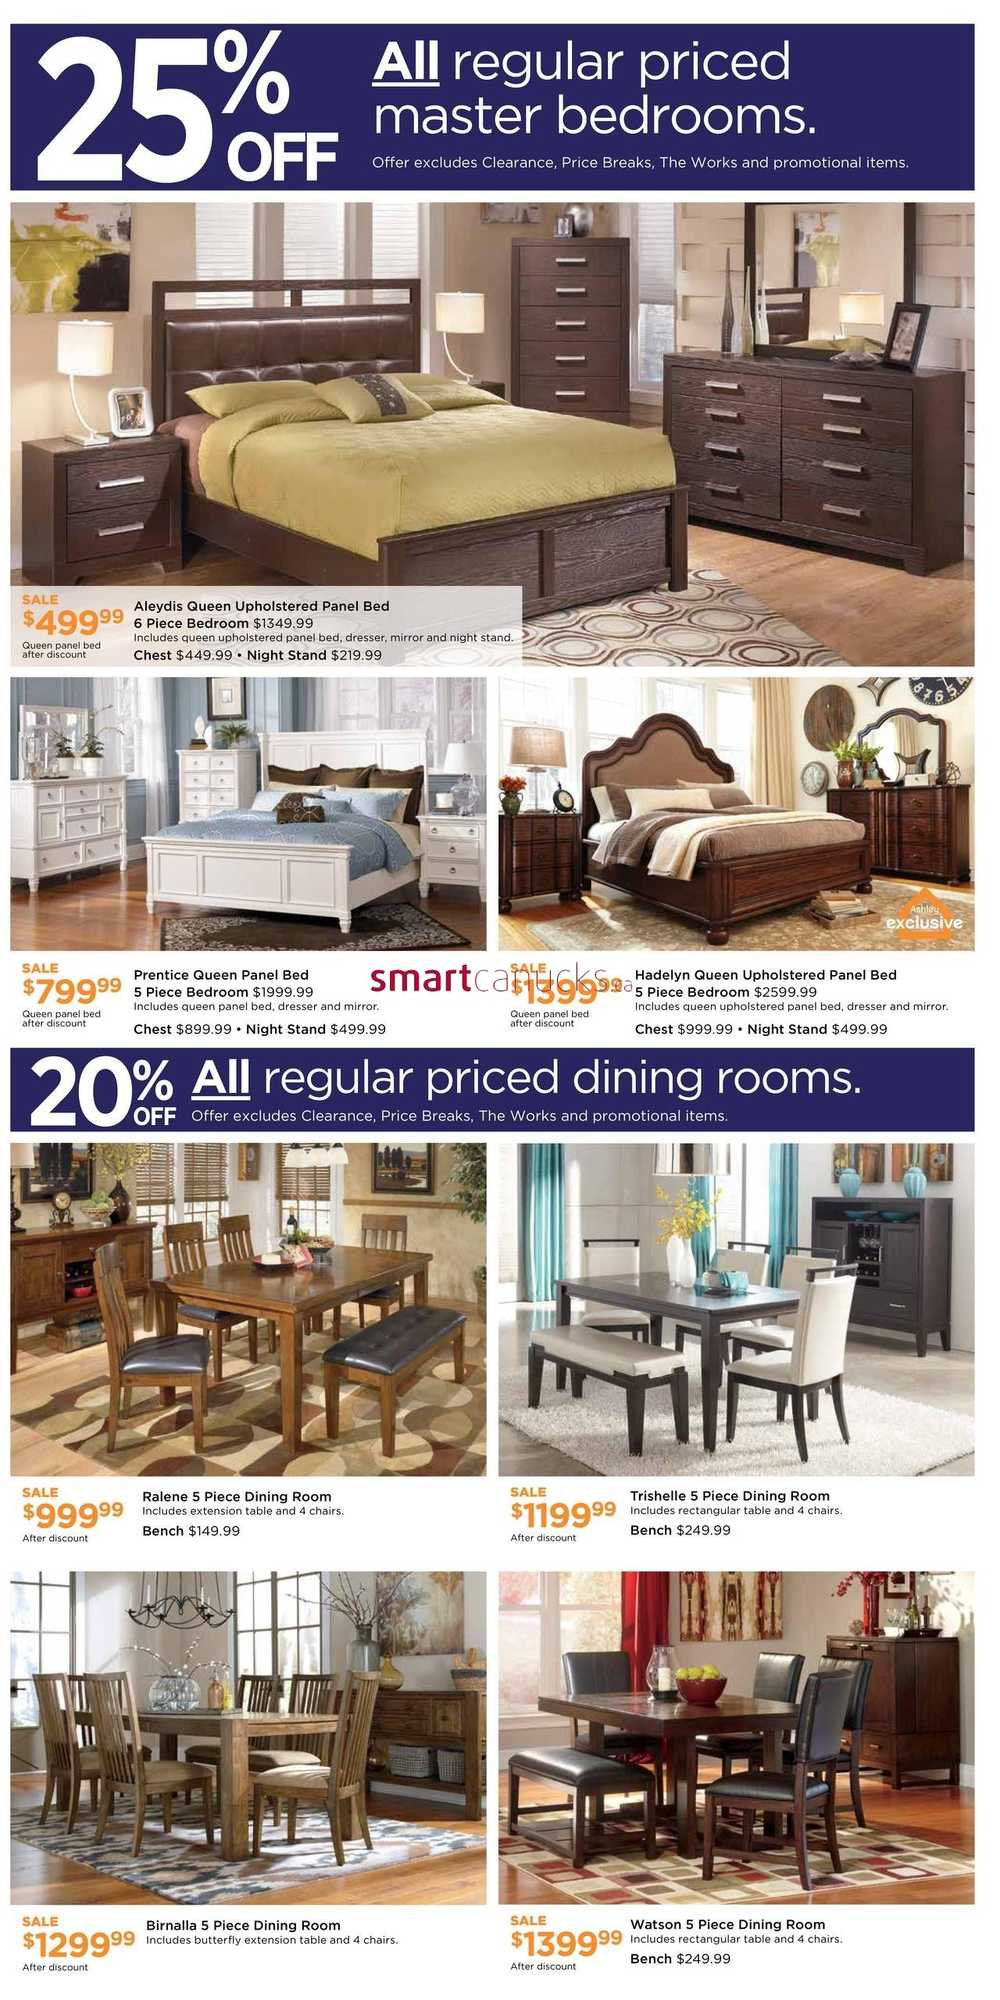 Ashley Furniture HomeStore West Weekend Sale Flyer